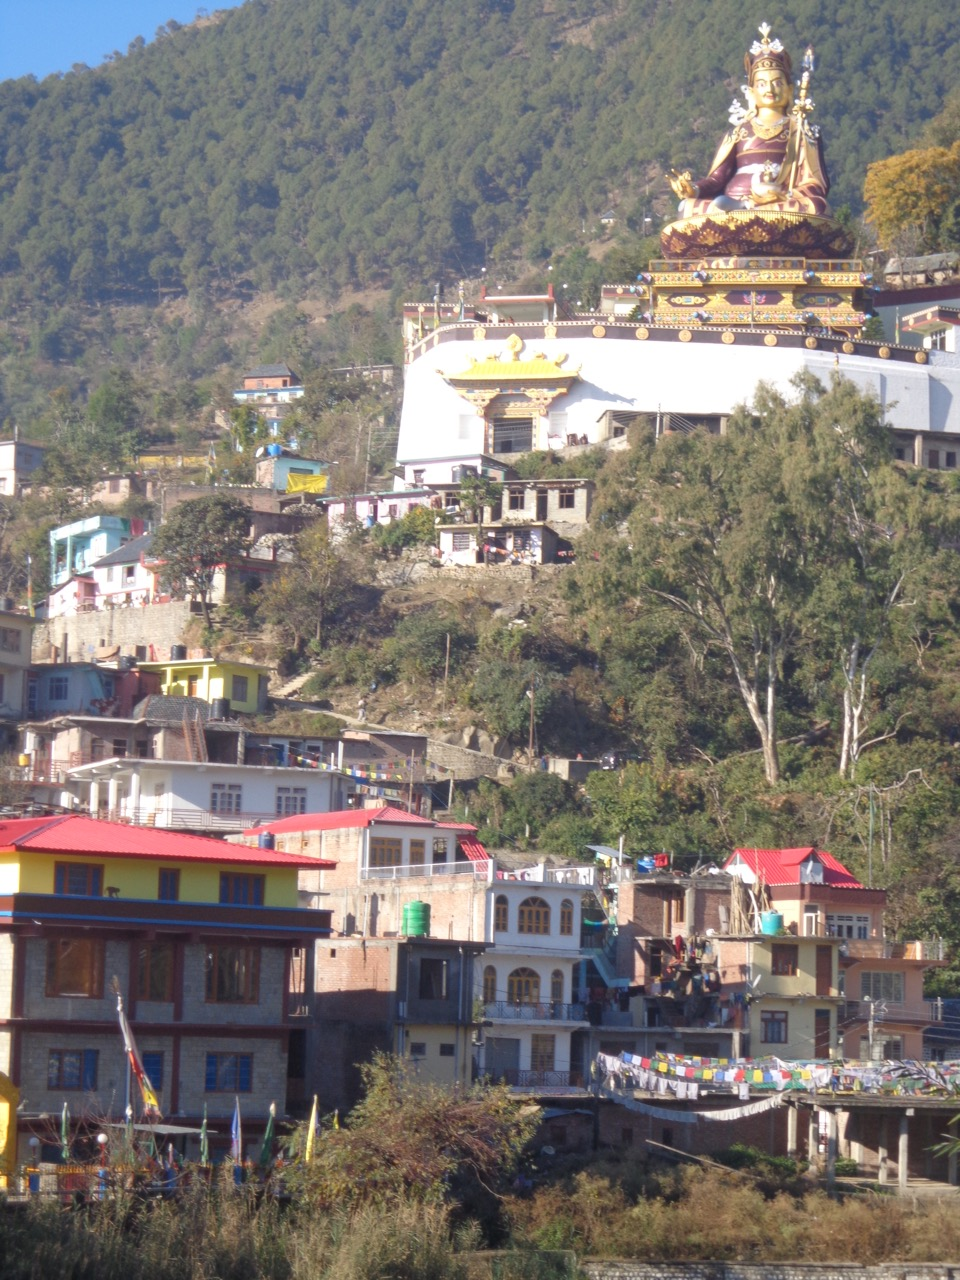 Padmasambhava's statue is visible from afar.